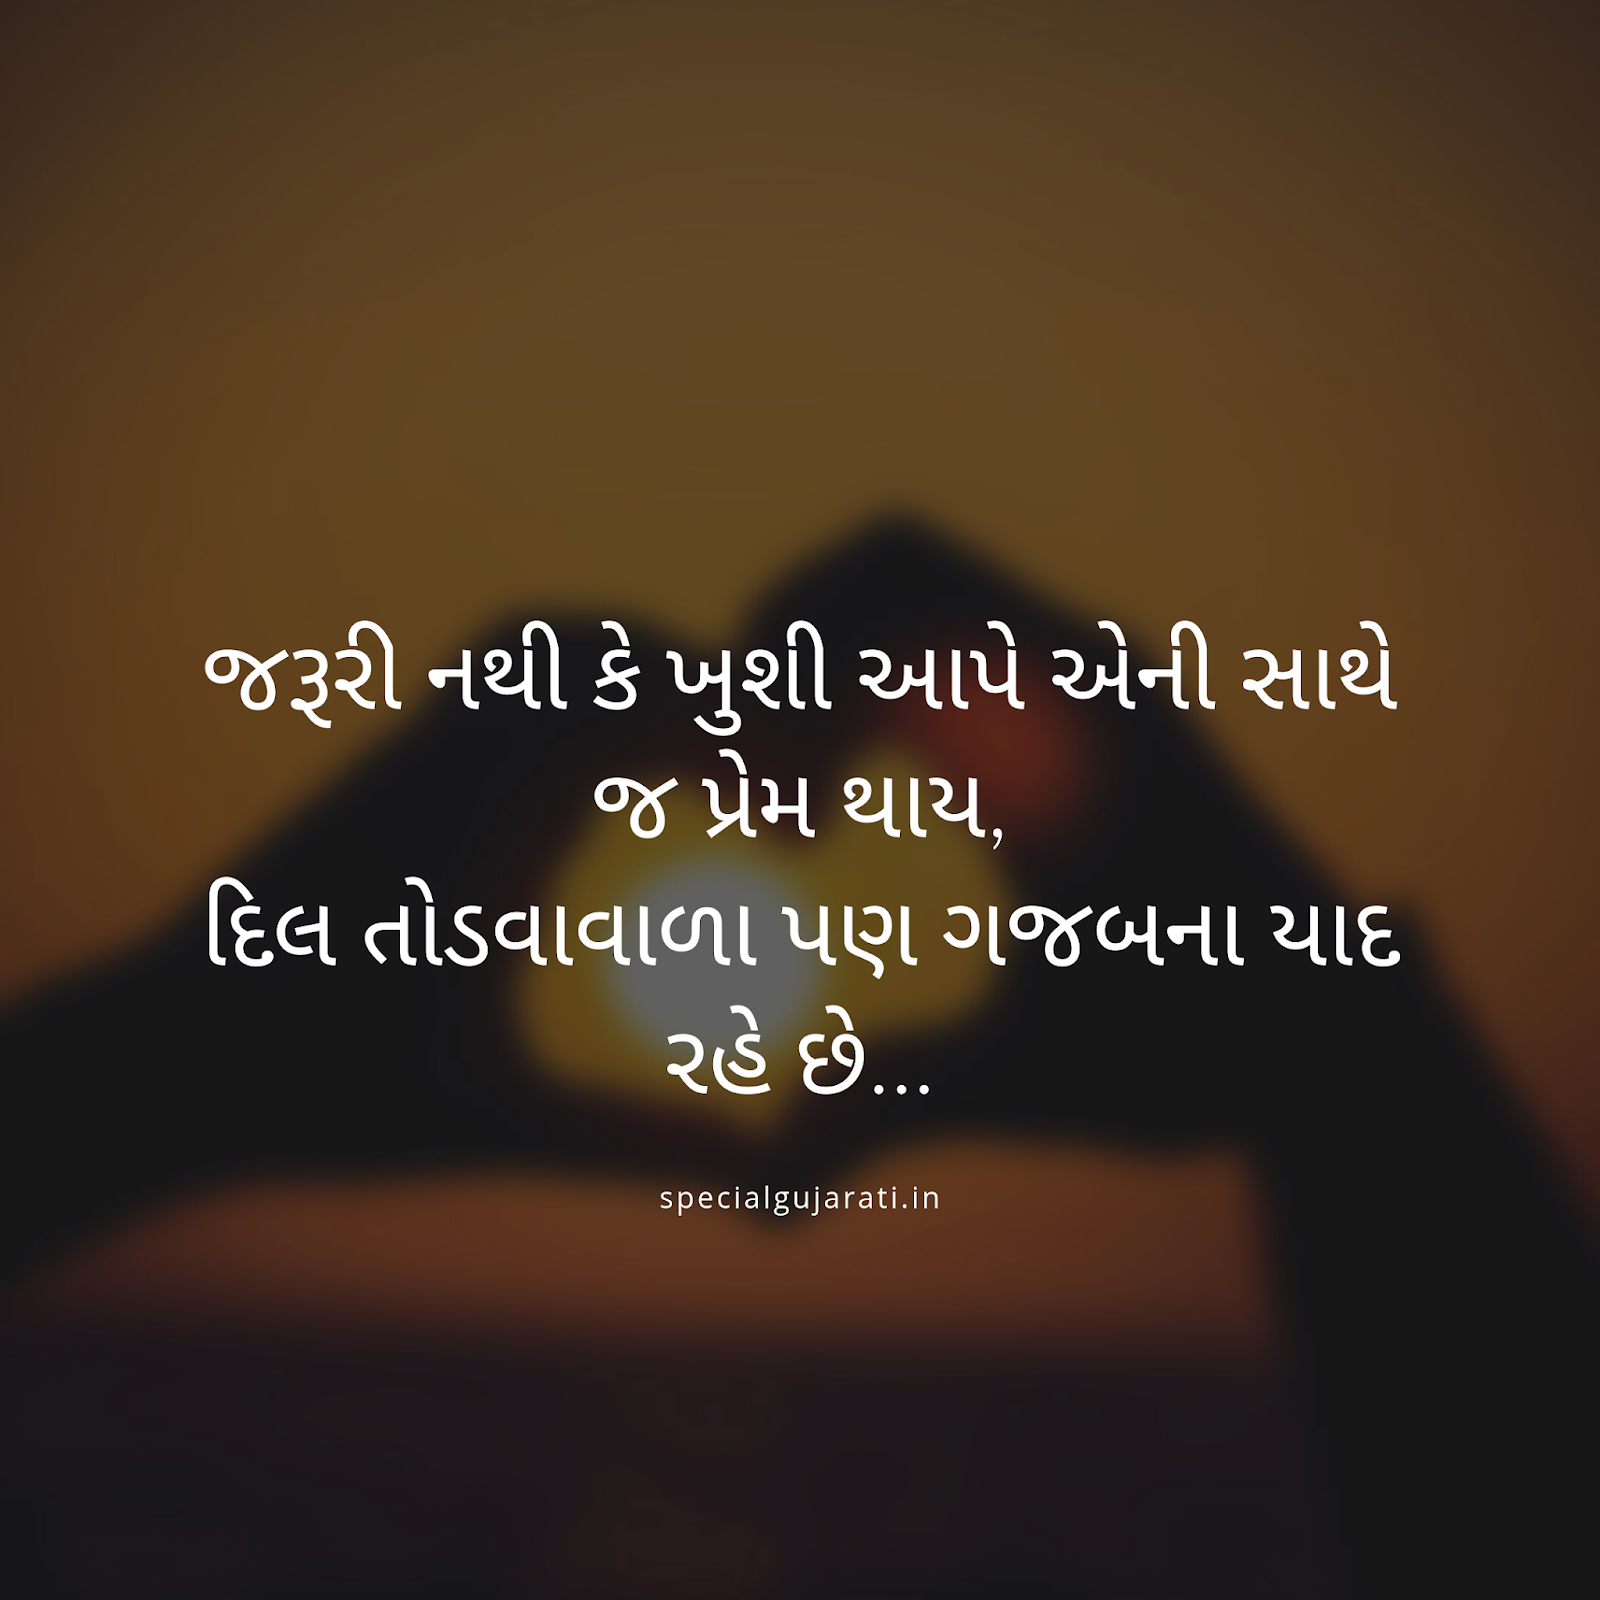 gujarati good night qoutes ,gujarati good night qoutes images